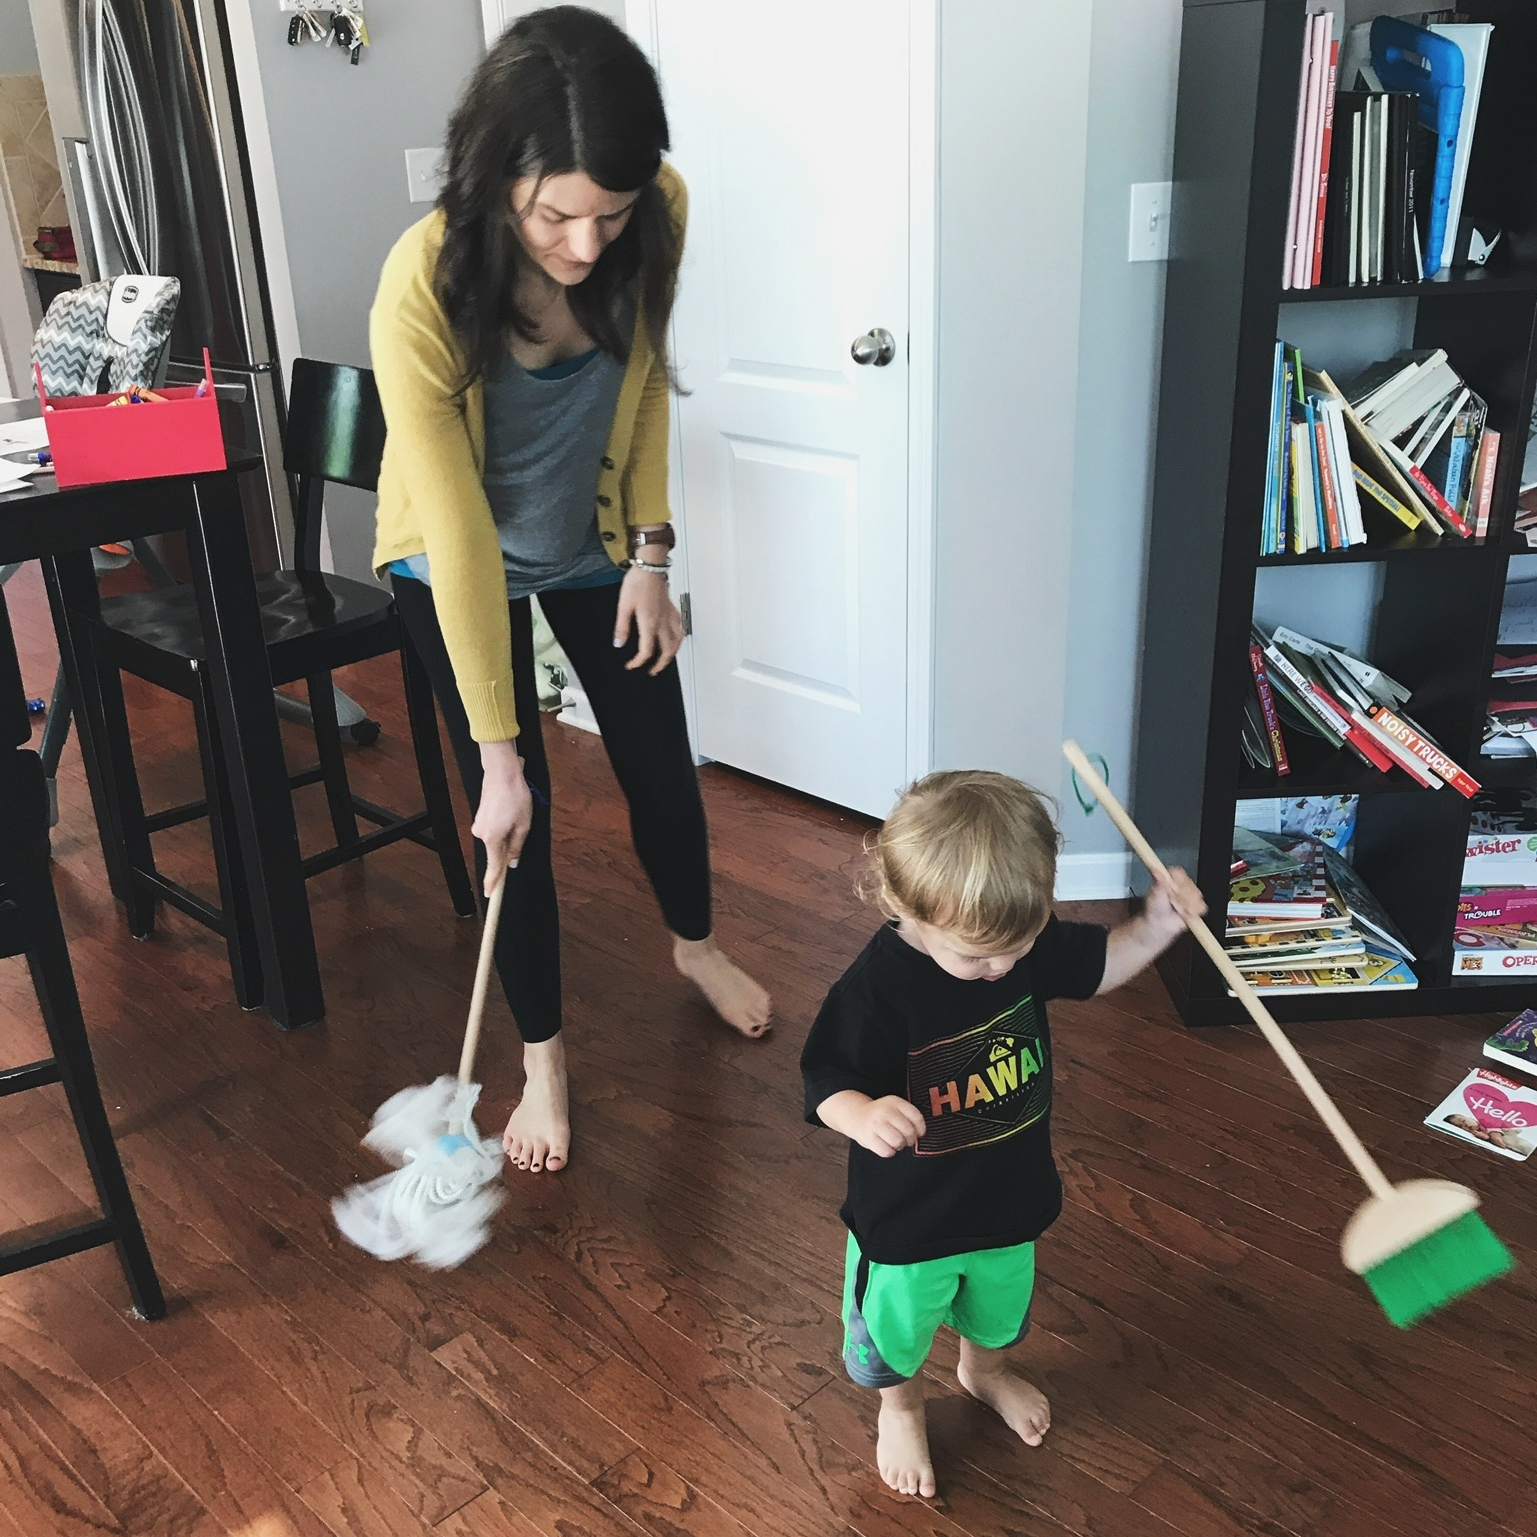 cleaning crew. (sweeping and mopping with jack reminds me of lawn mowing and leaf blowing with luca, when he was this age.)